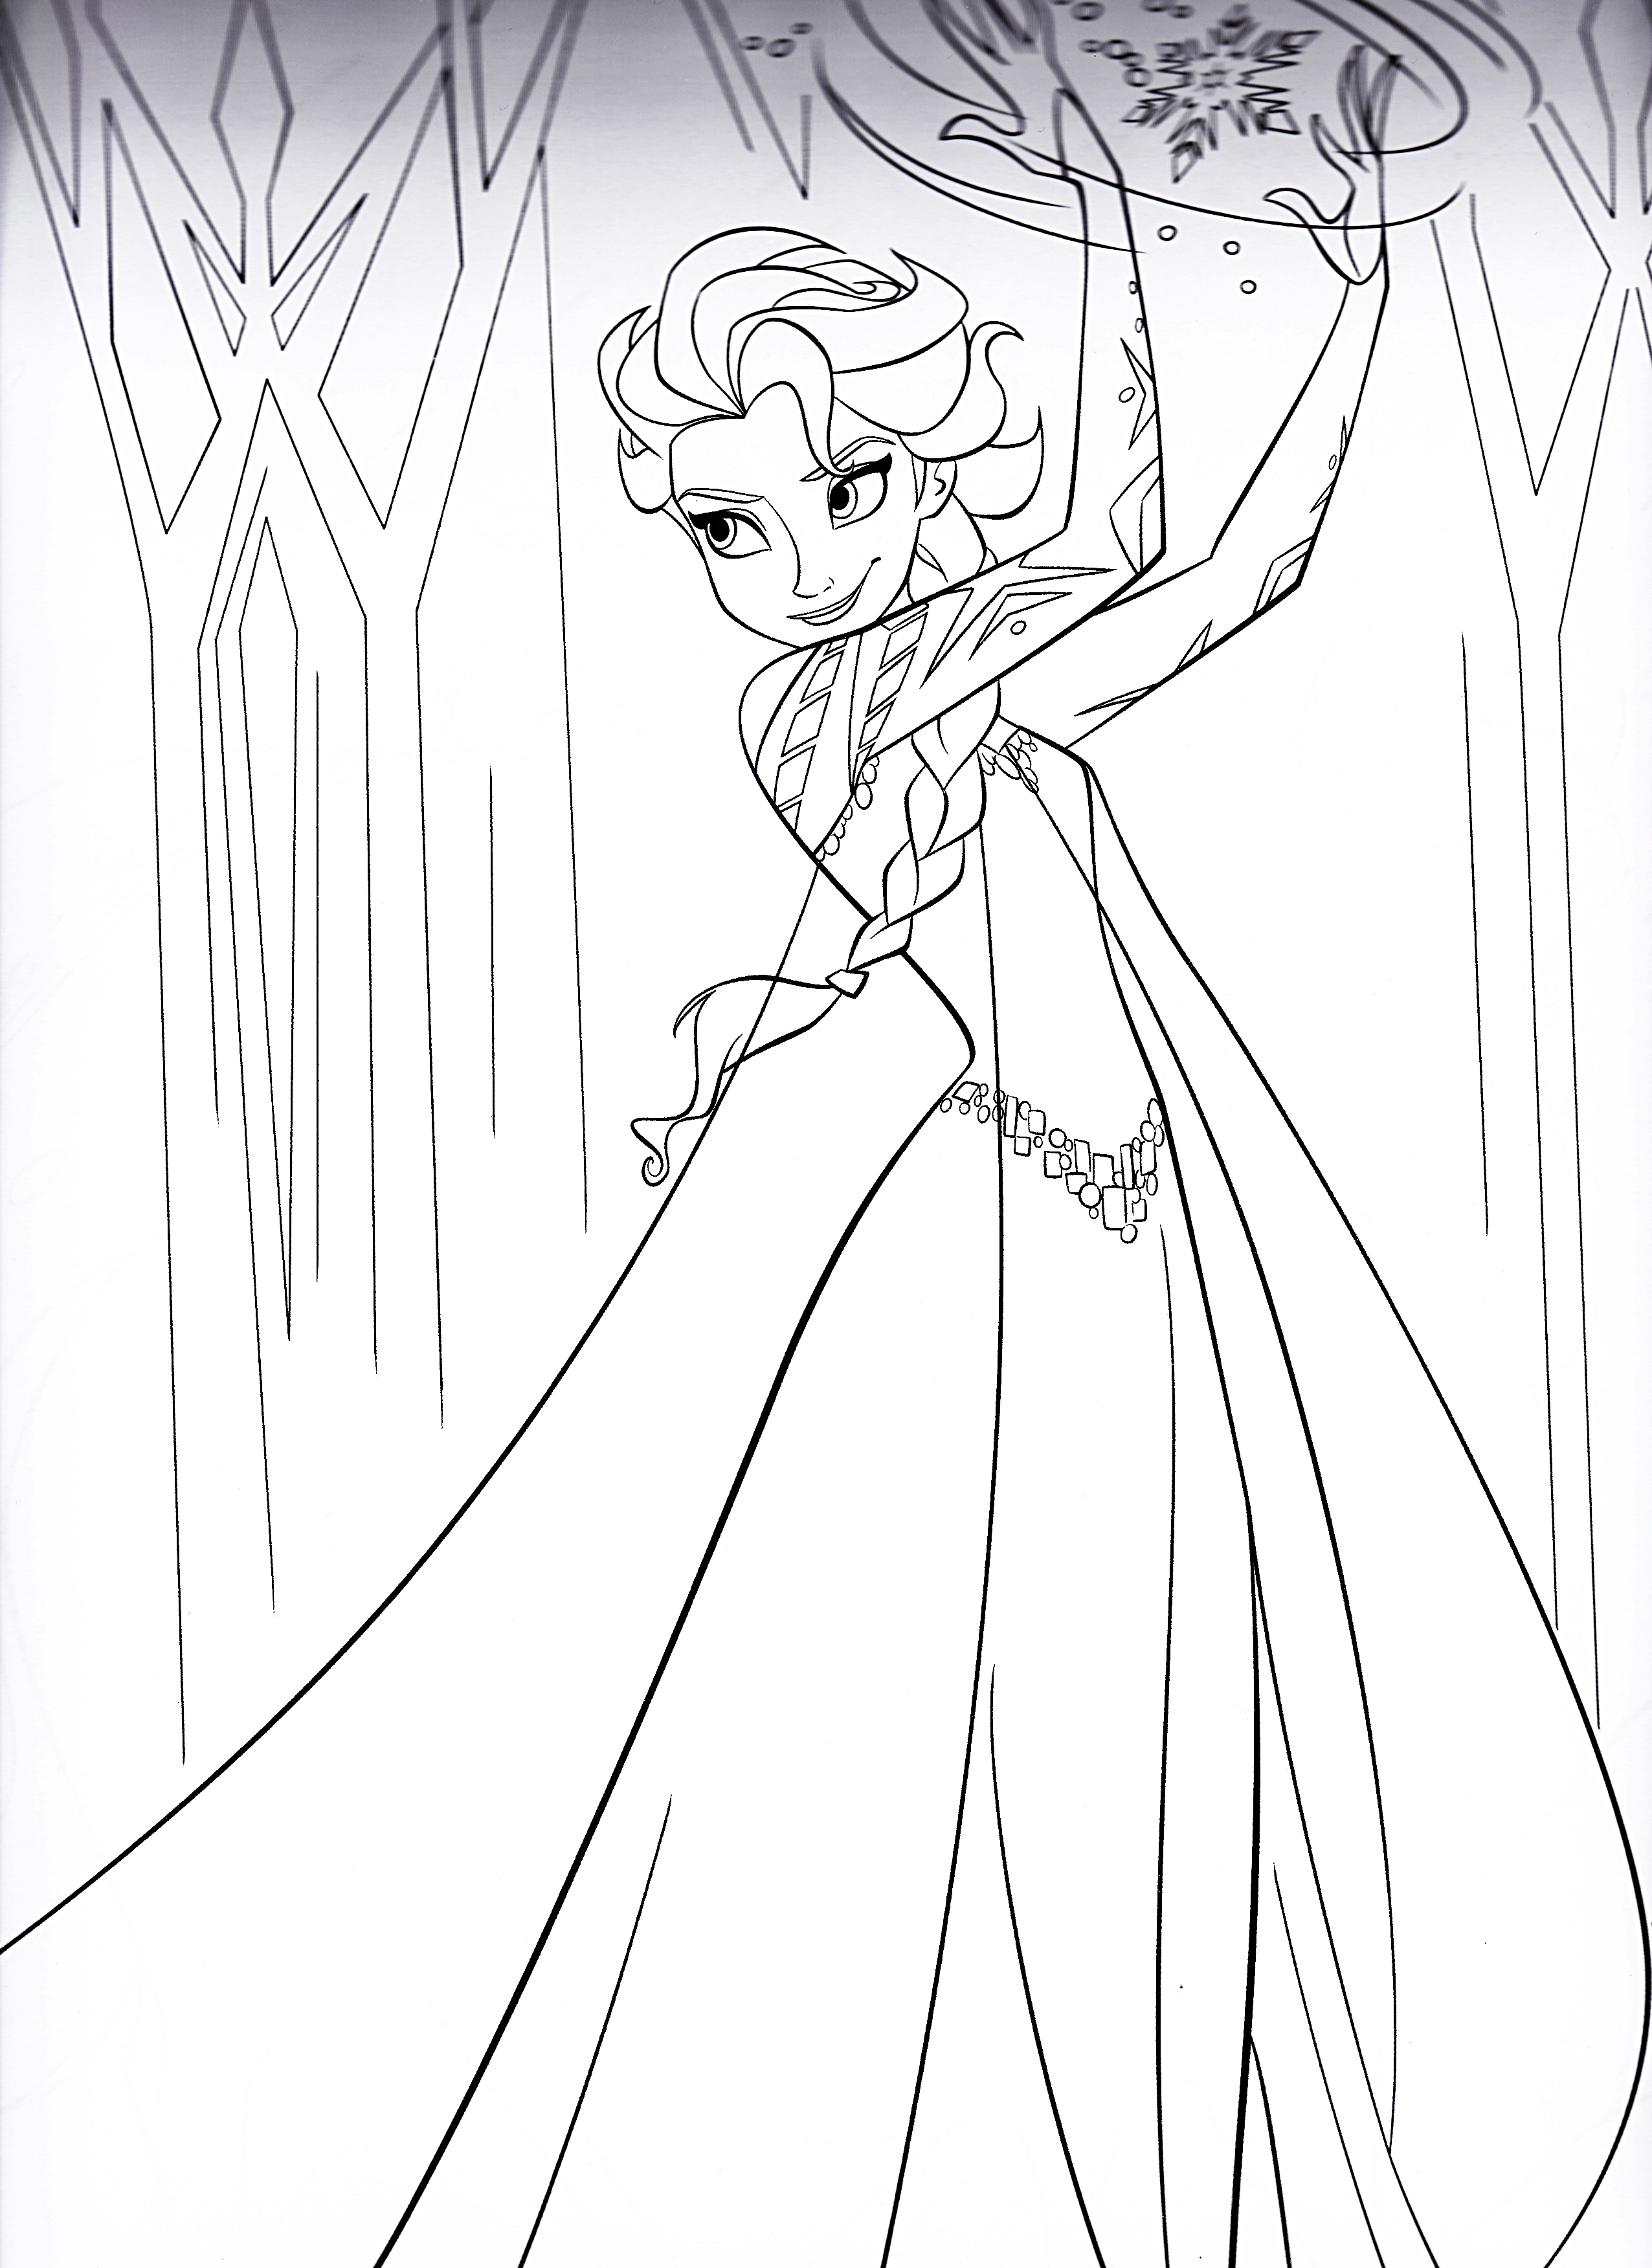 Coloring Pages Queen Elsa : Free printable coloring pages elsa